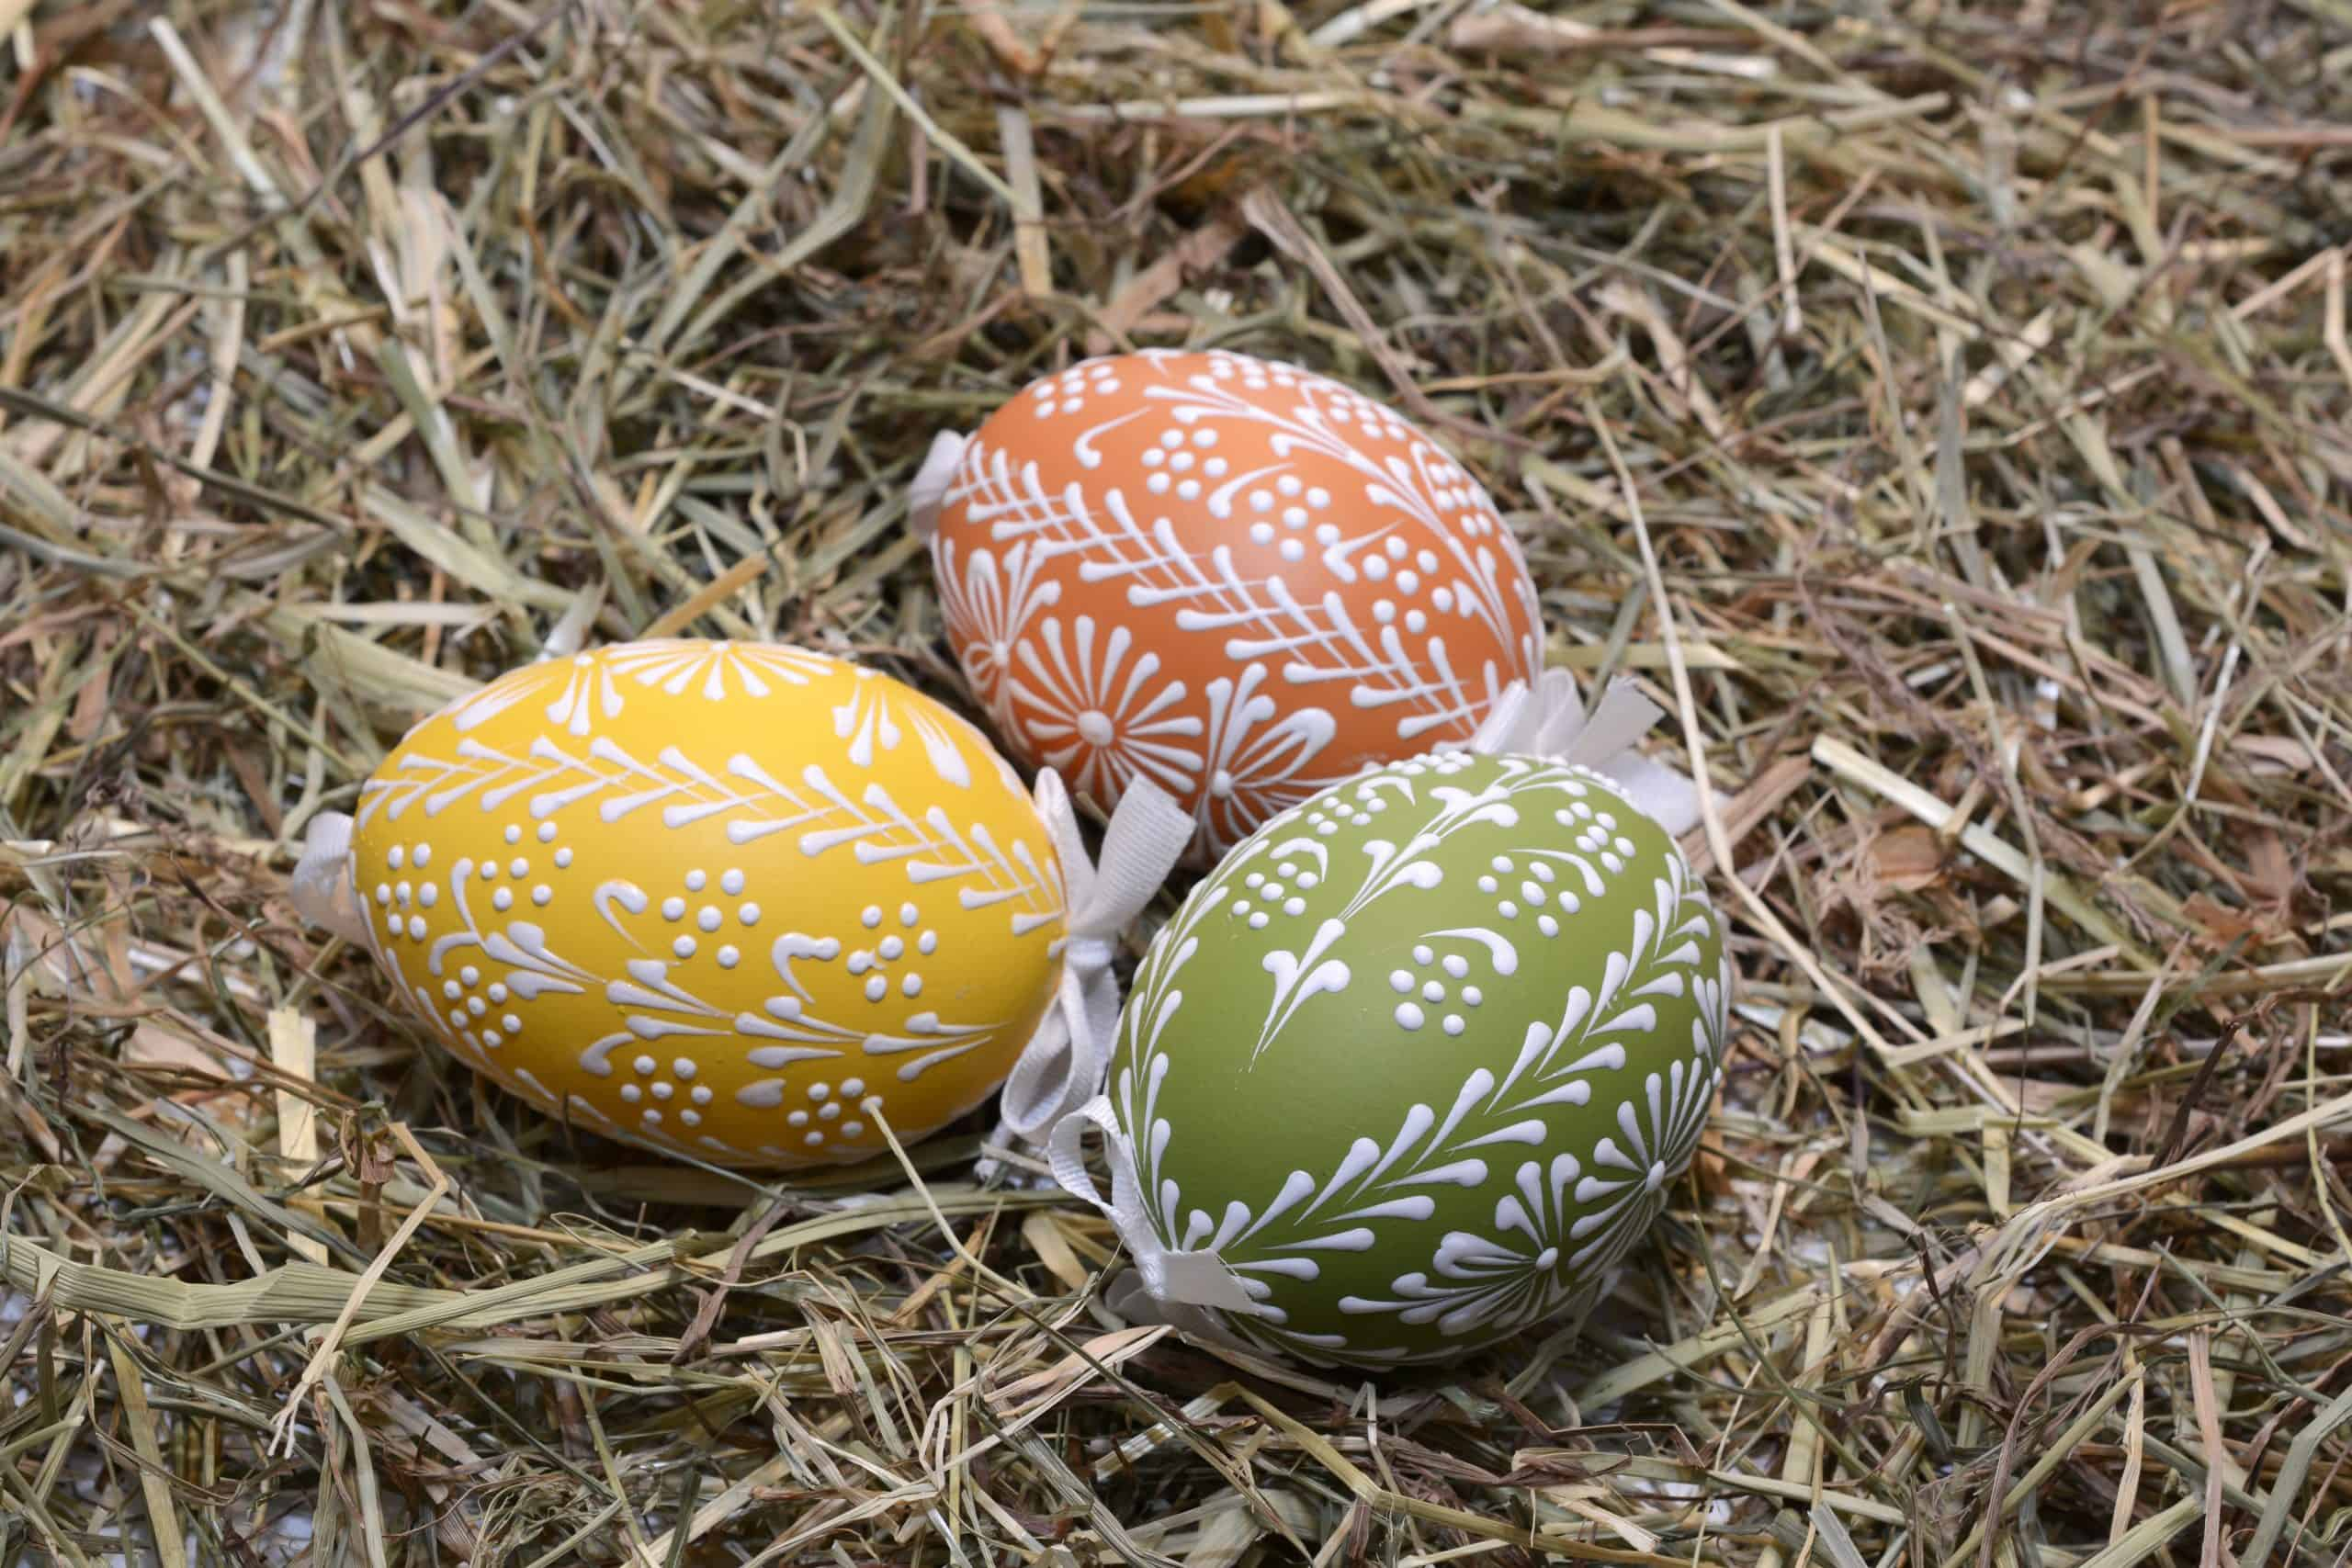 Brilliant Easter Egg Decorating Ideas You Need to Try | justjeslyn.com